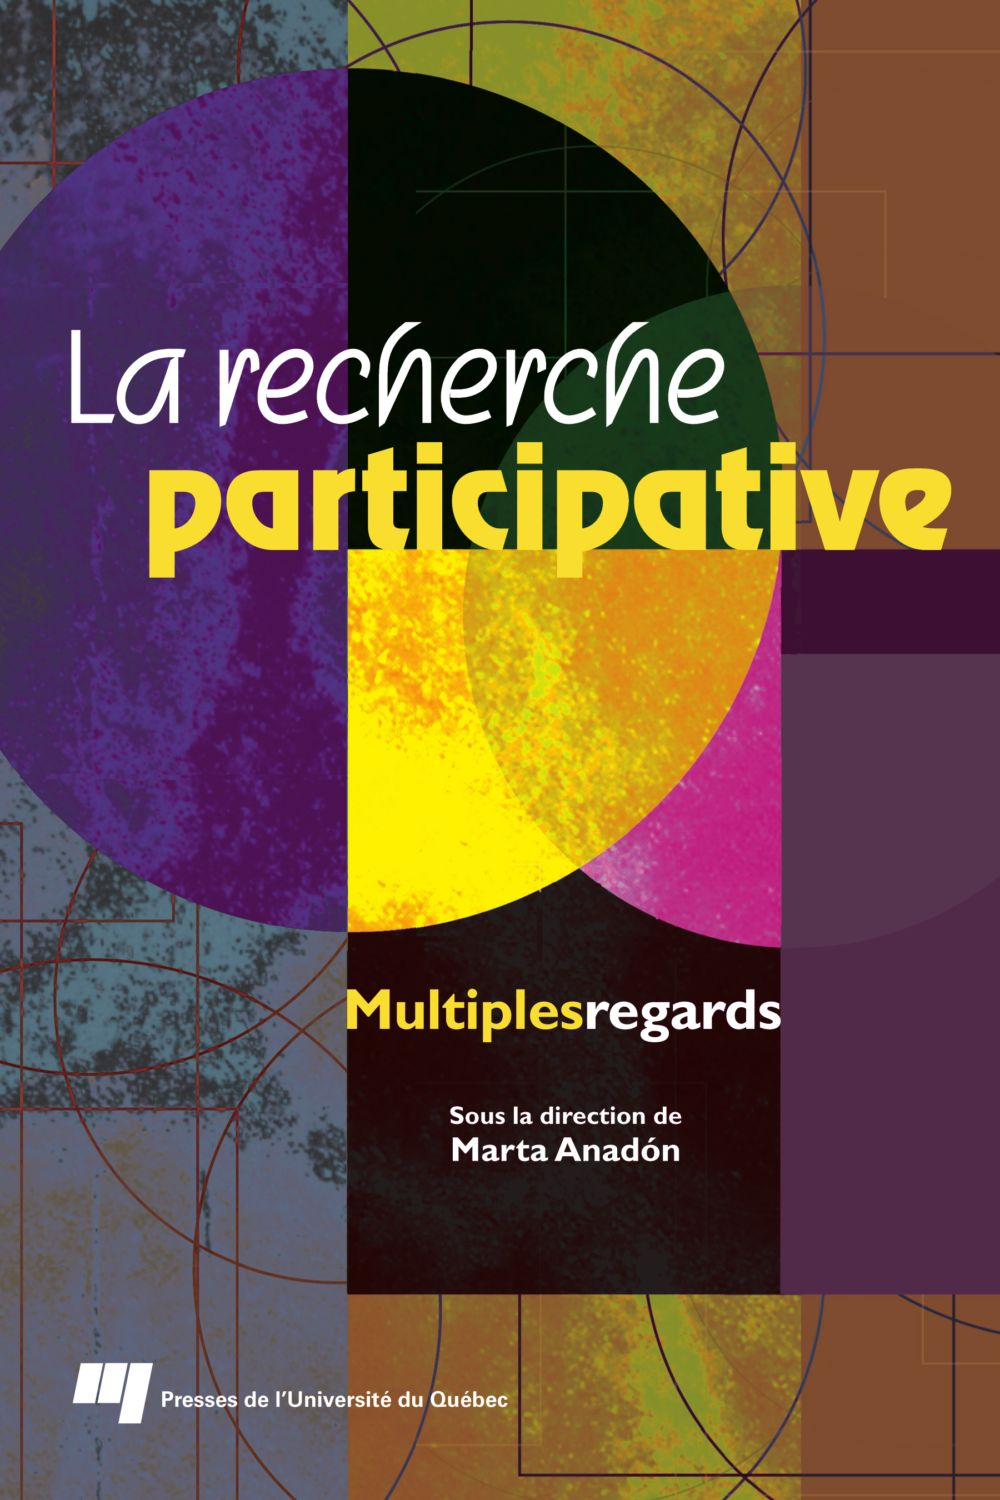 Recherche participative : multiples regards